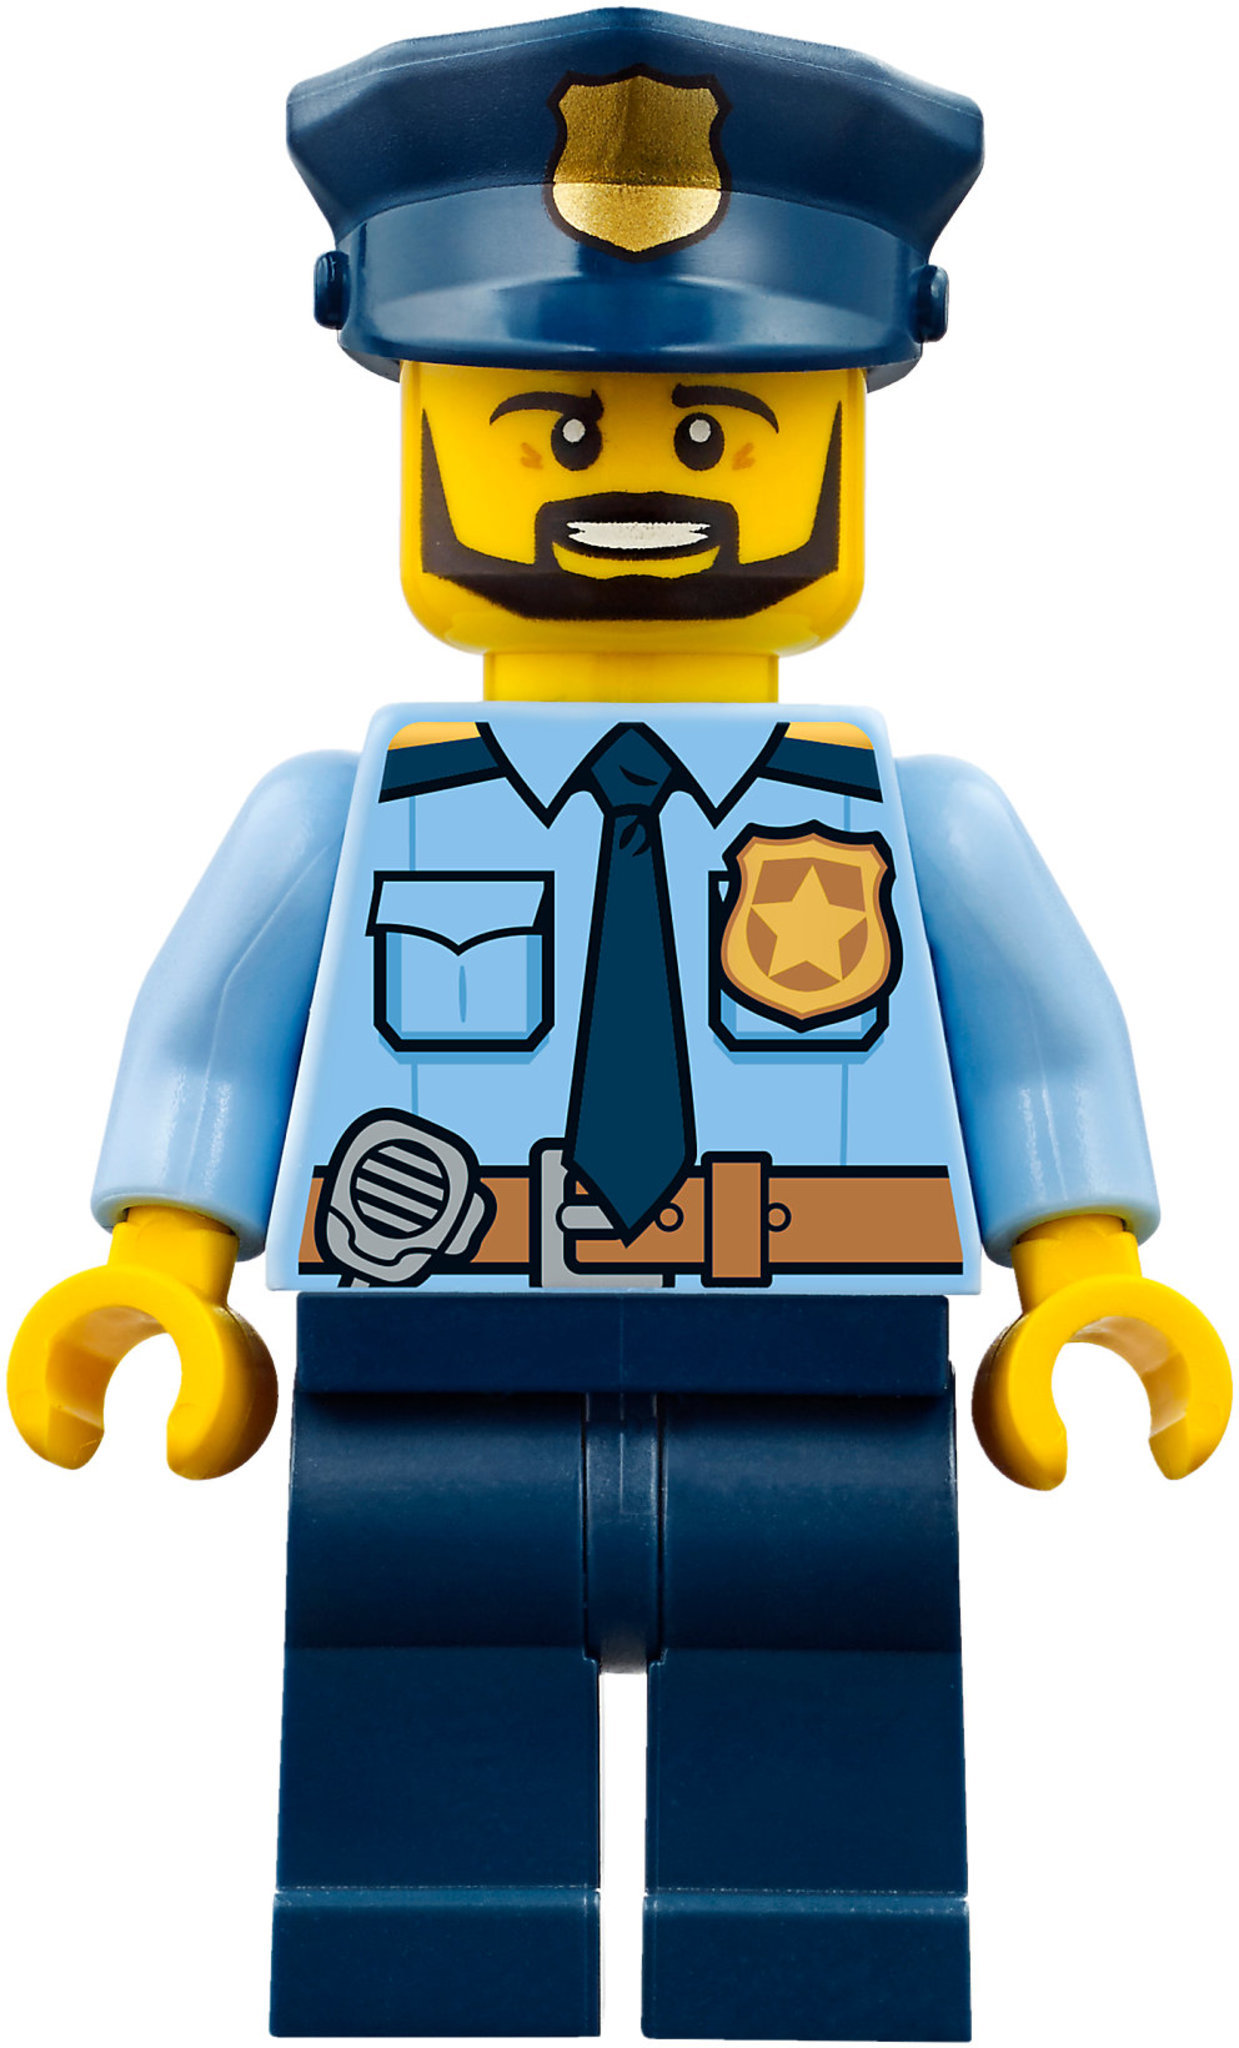 Lego clipart number 5. City at getdrawings com